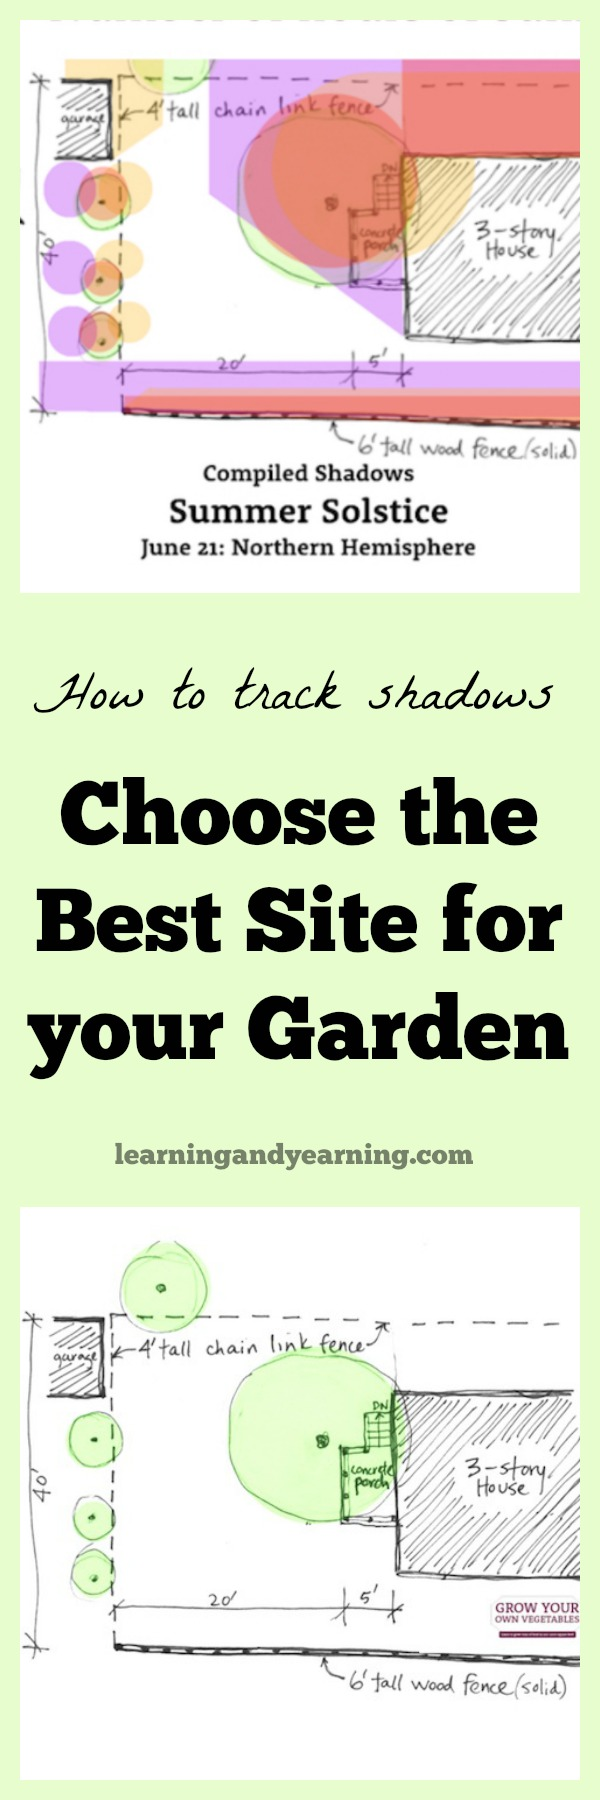 track shadows to choose the best site for your garden